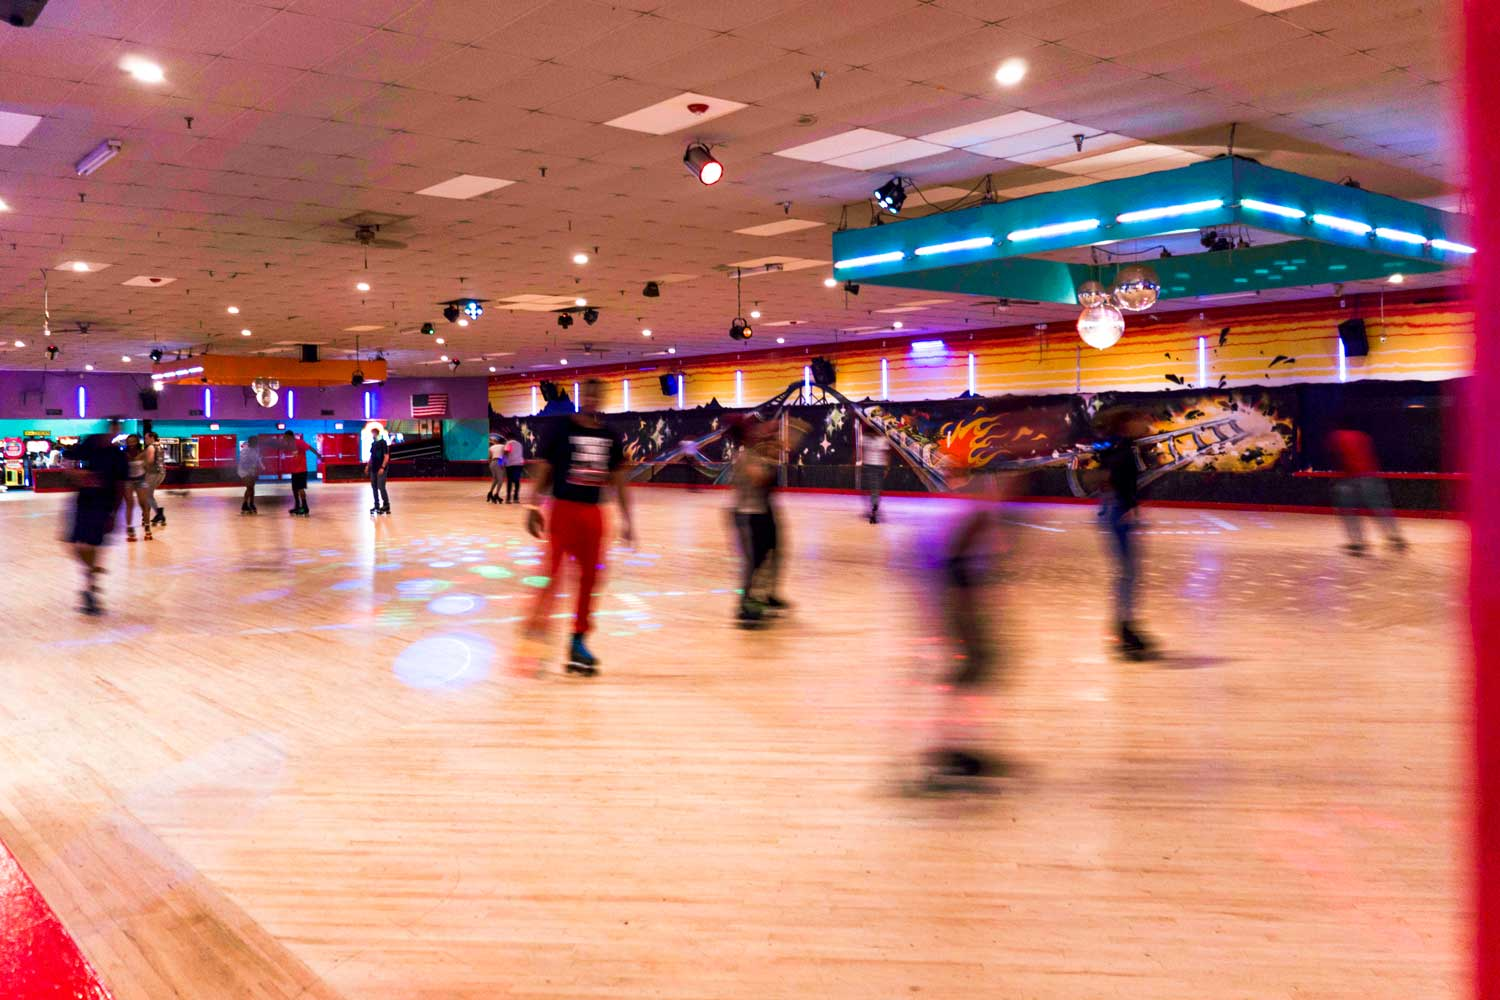 Walking distance to Temple Hills Skate Palace in Temple Hills, MD